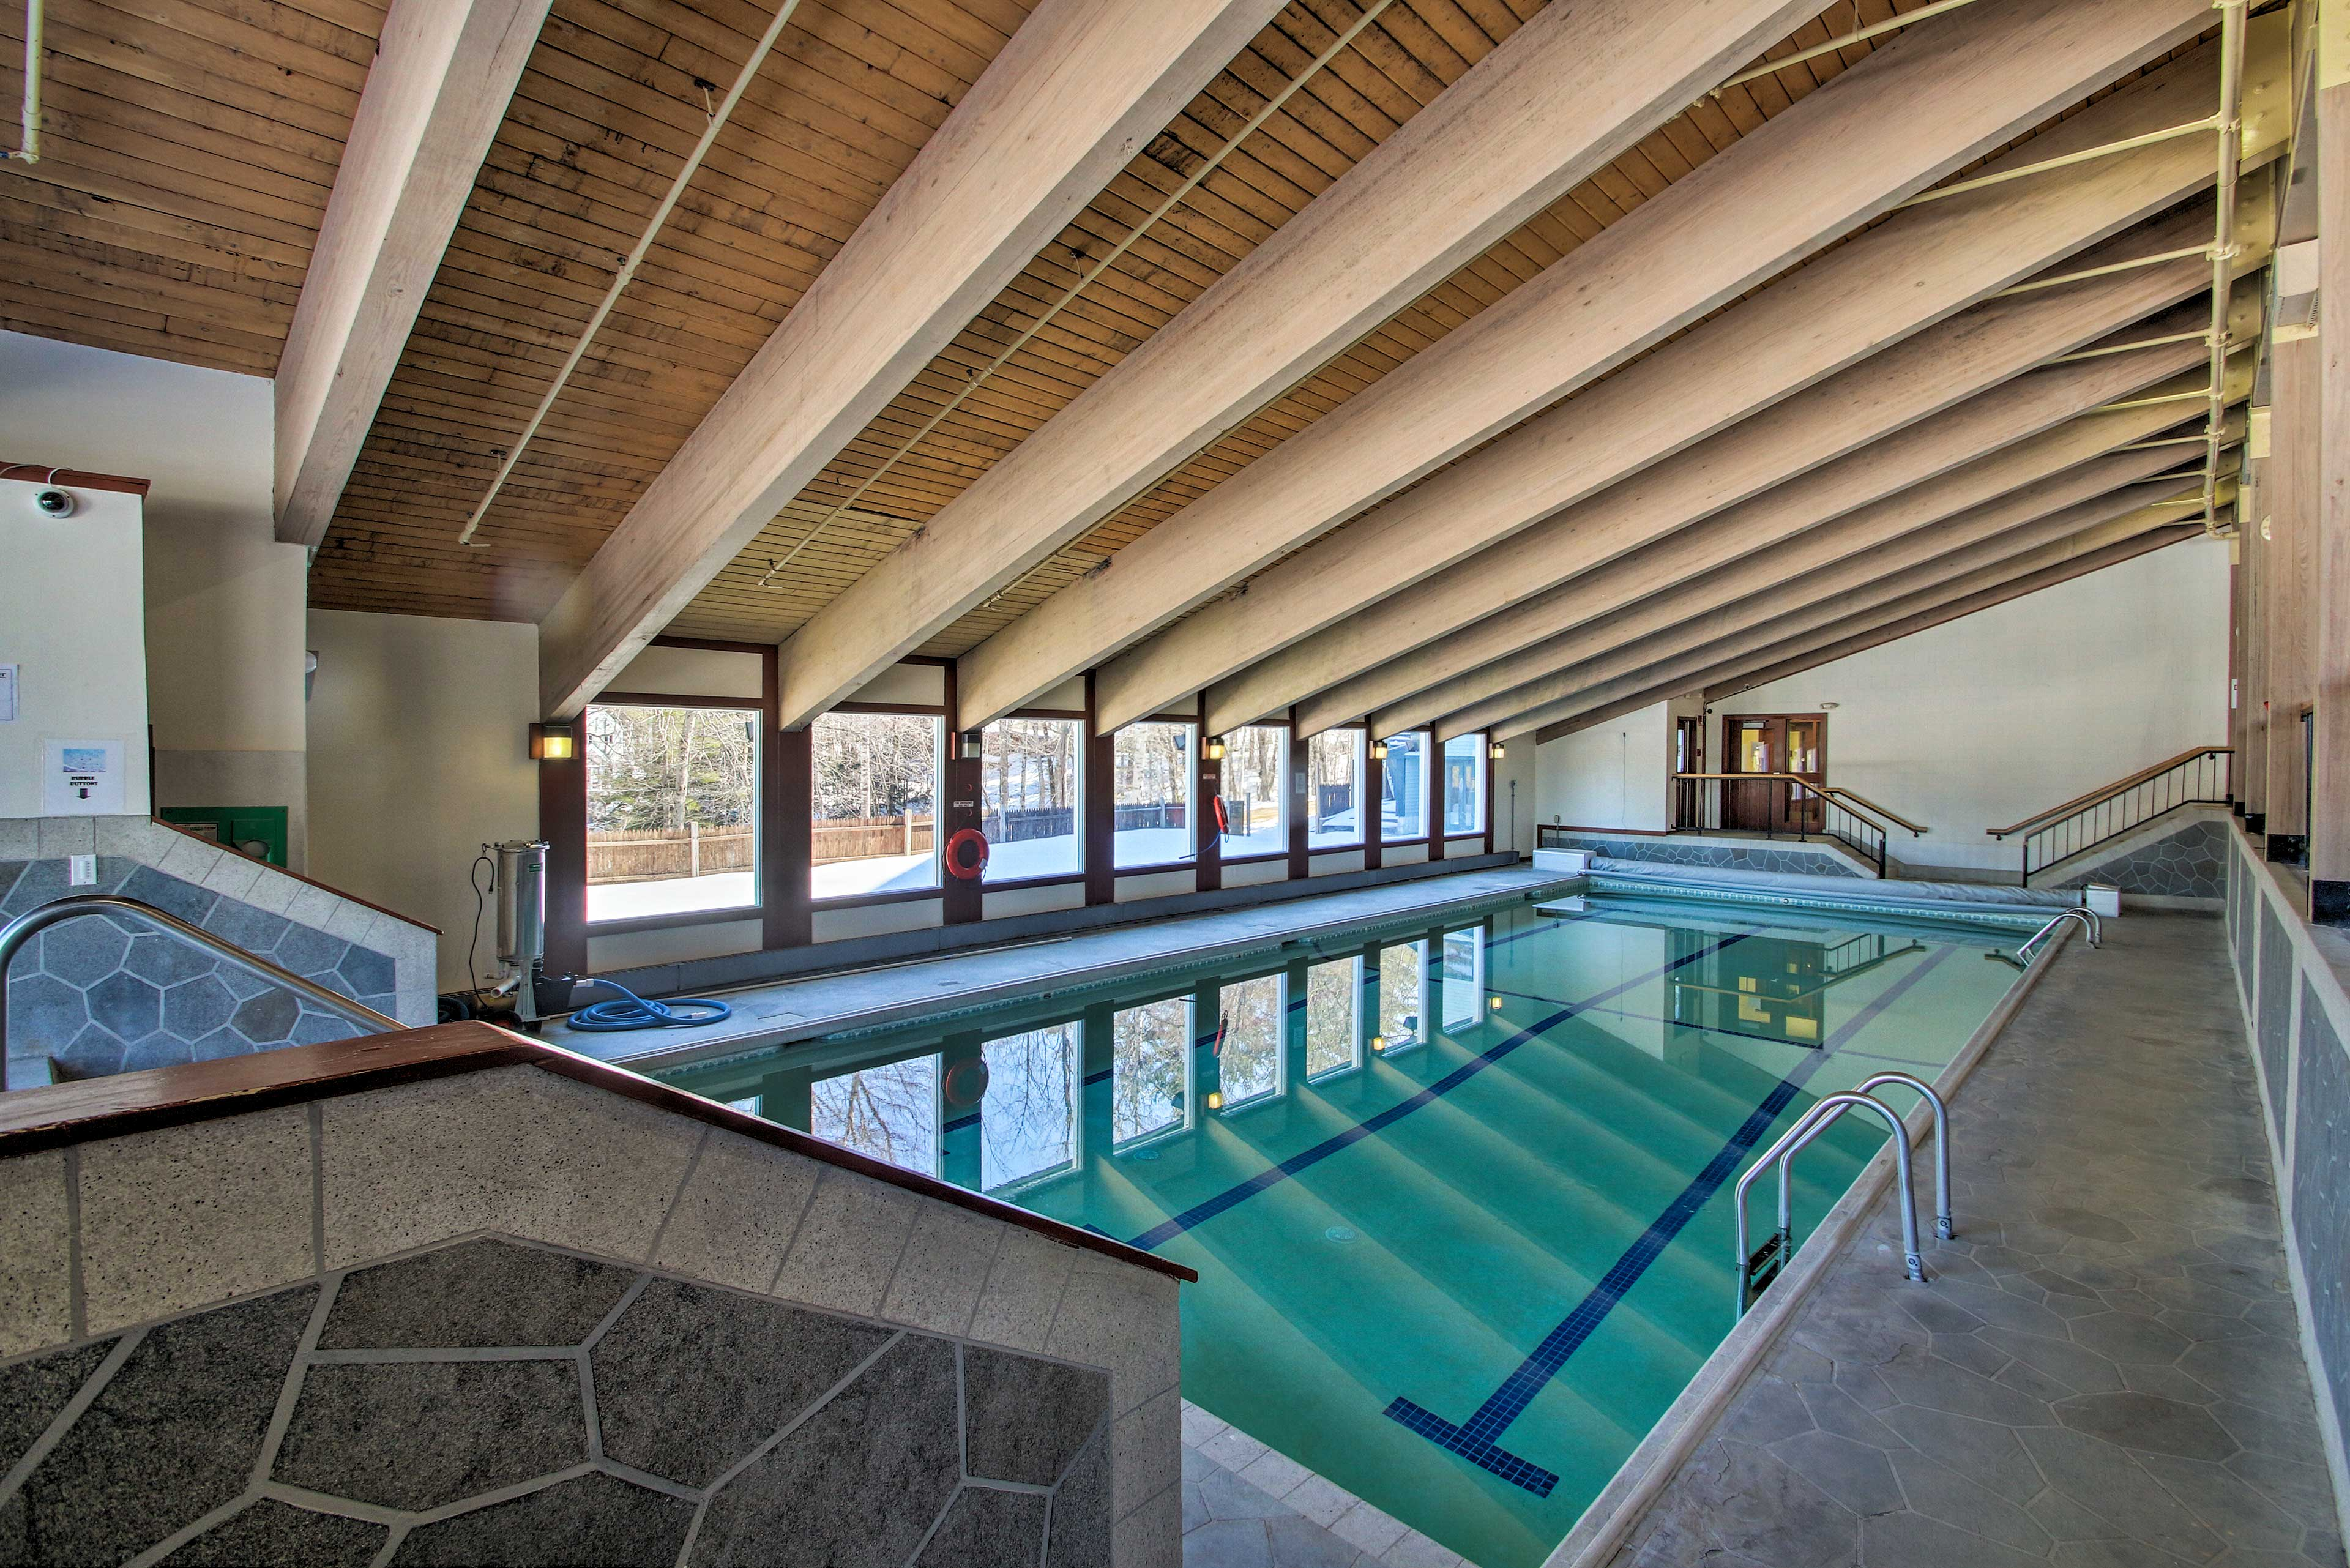 Take a dip in one of the 4 pools, or opt for a spot in one of the 3 spas.